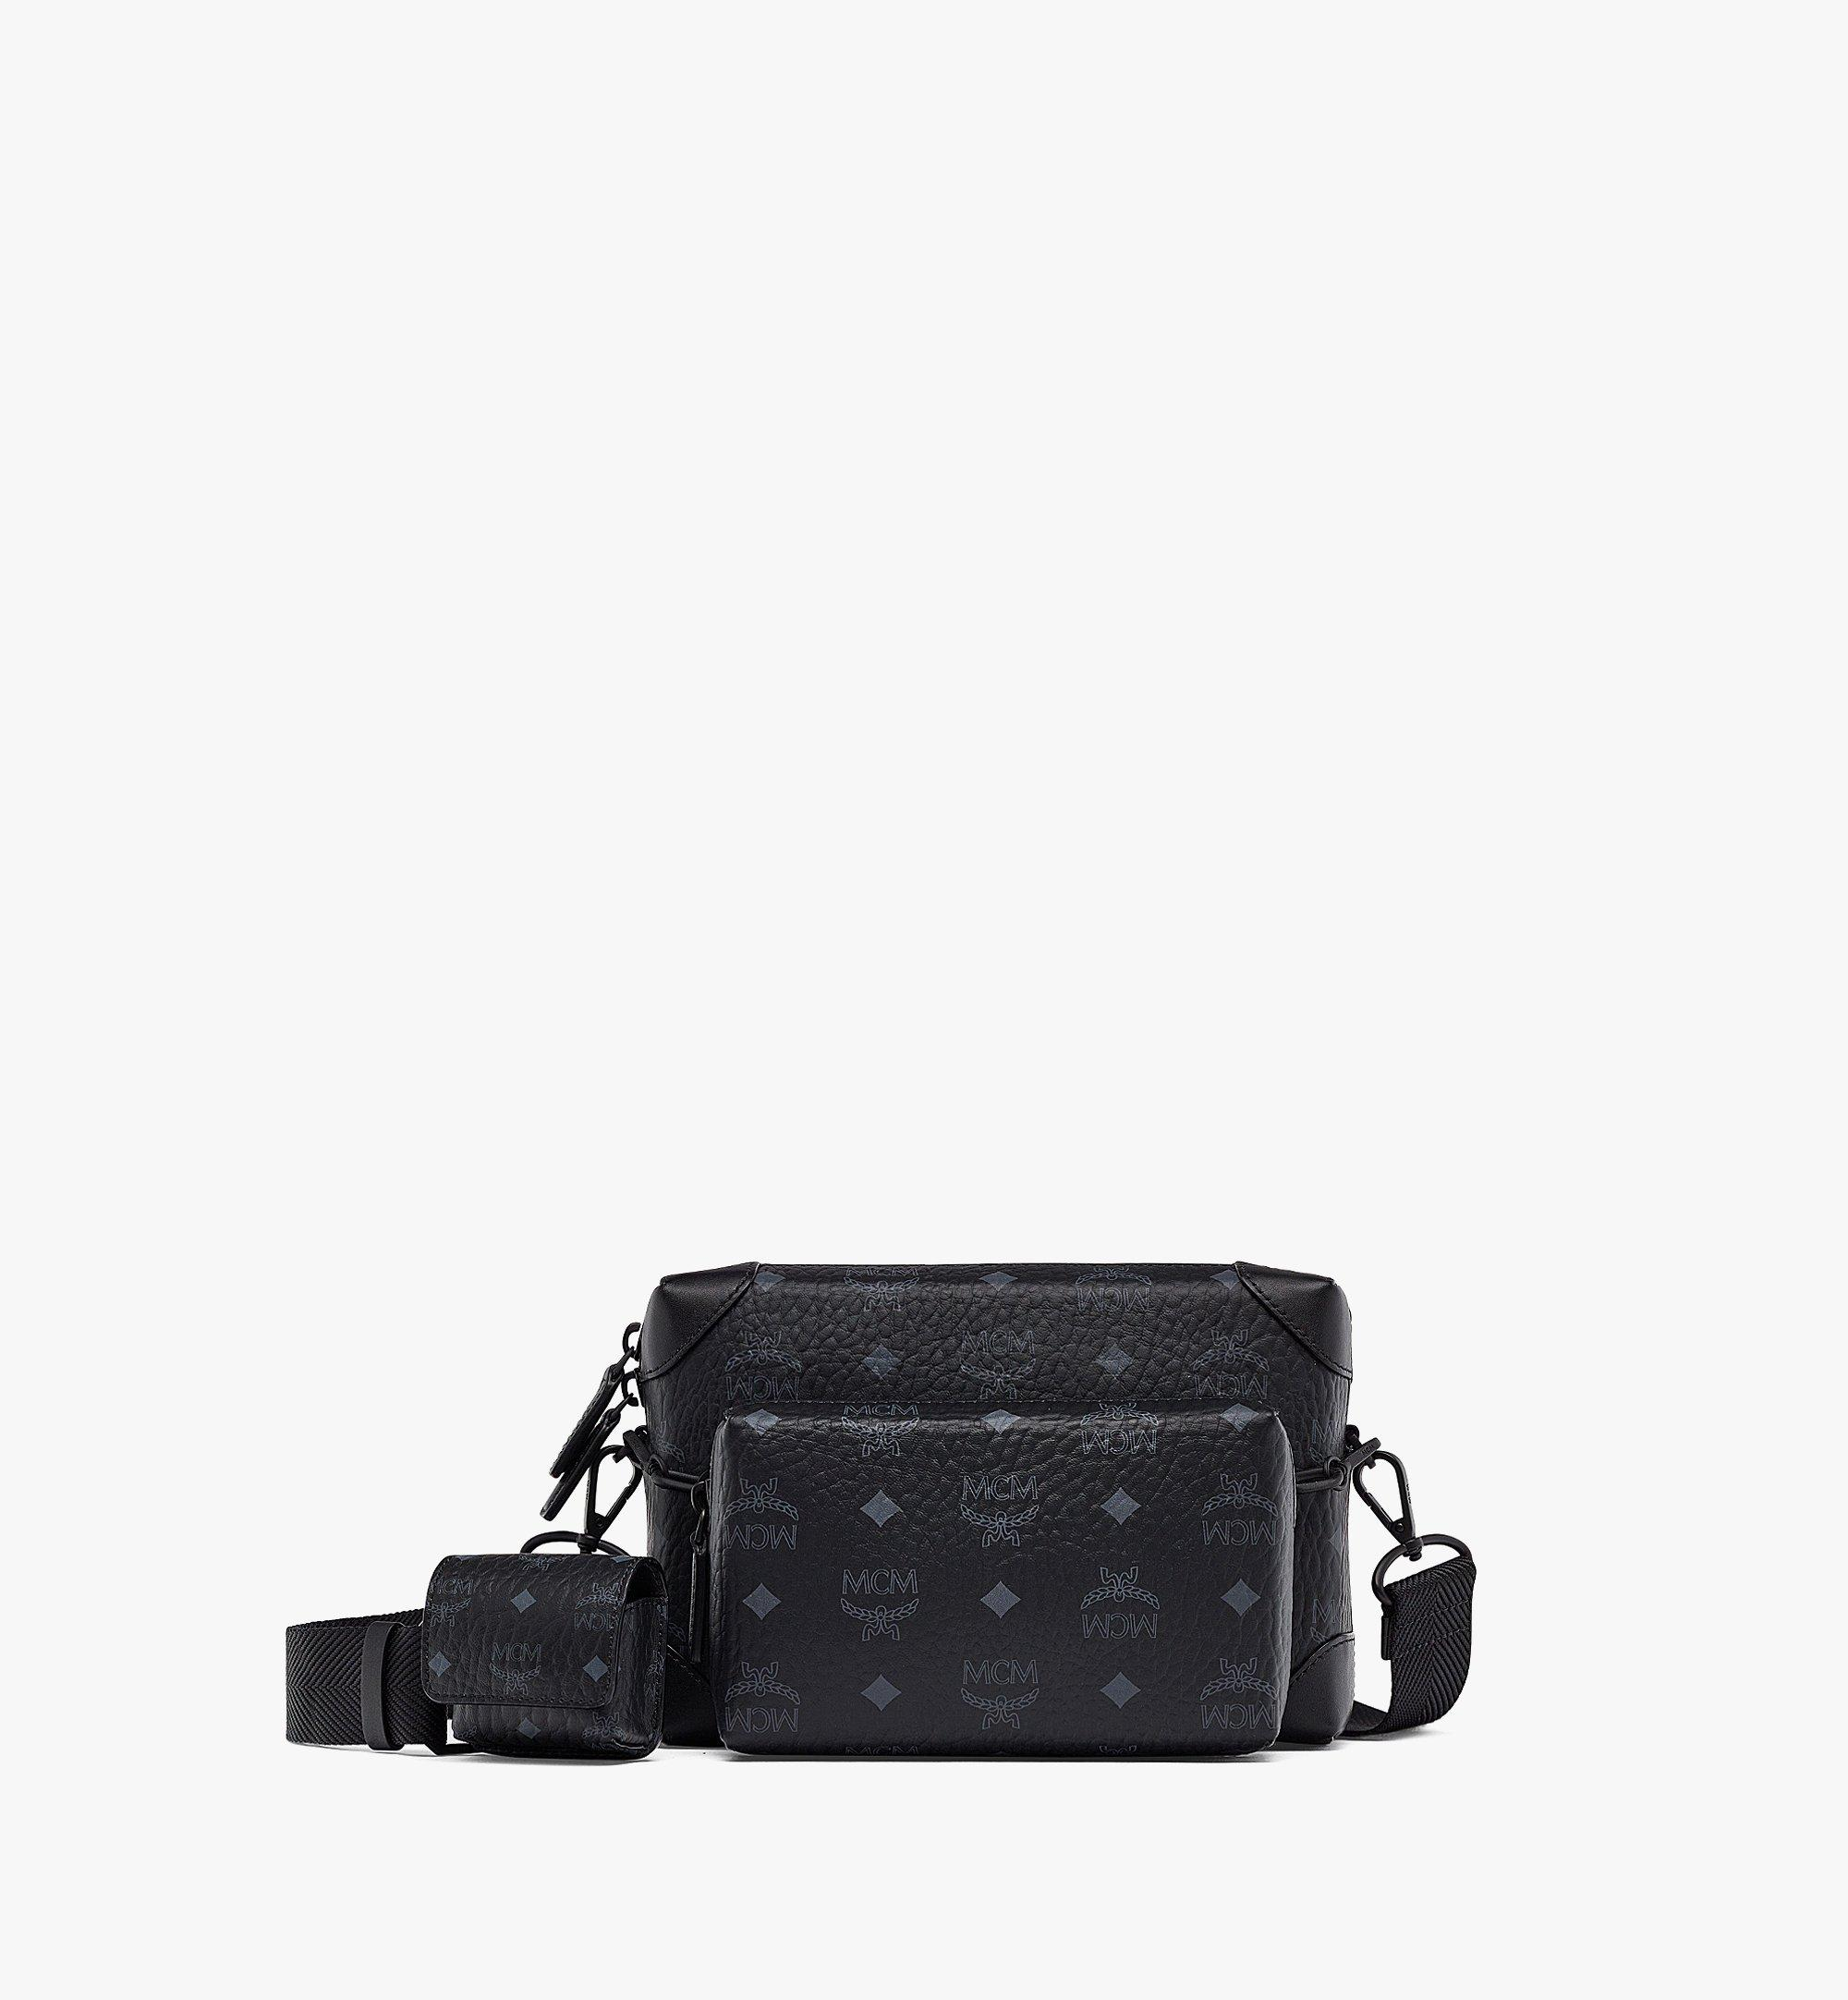 MCM Soft Berlin Multifunction Crossbody in Visetos Black MMRBSBF05BK001 Alternate View 1